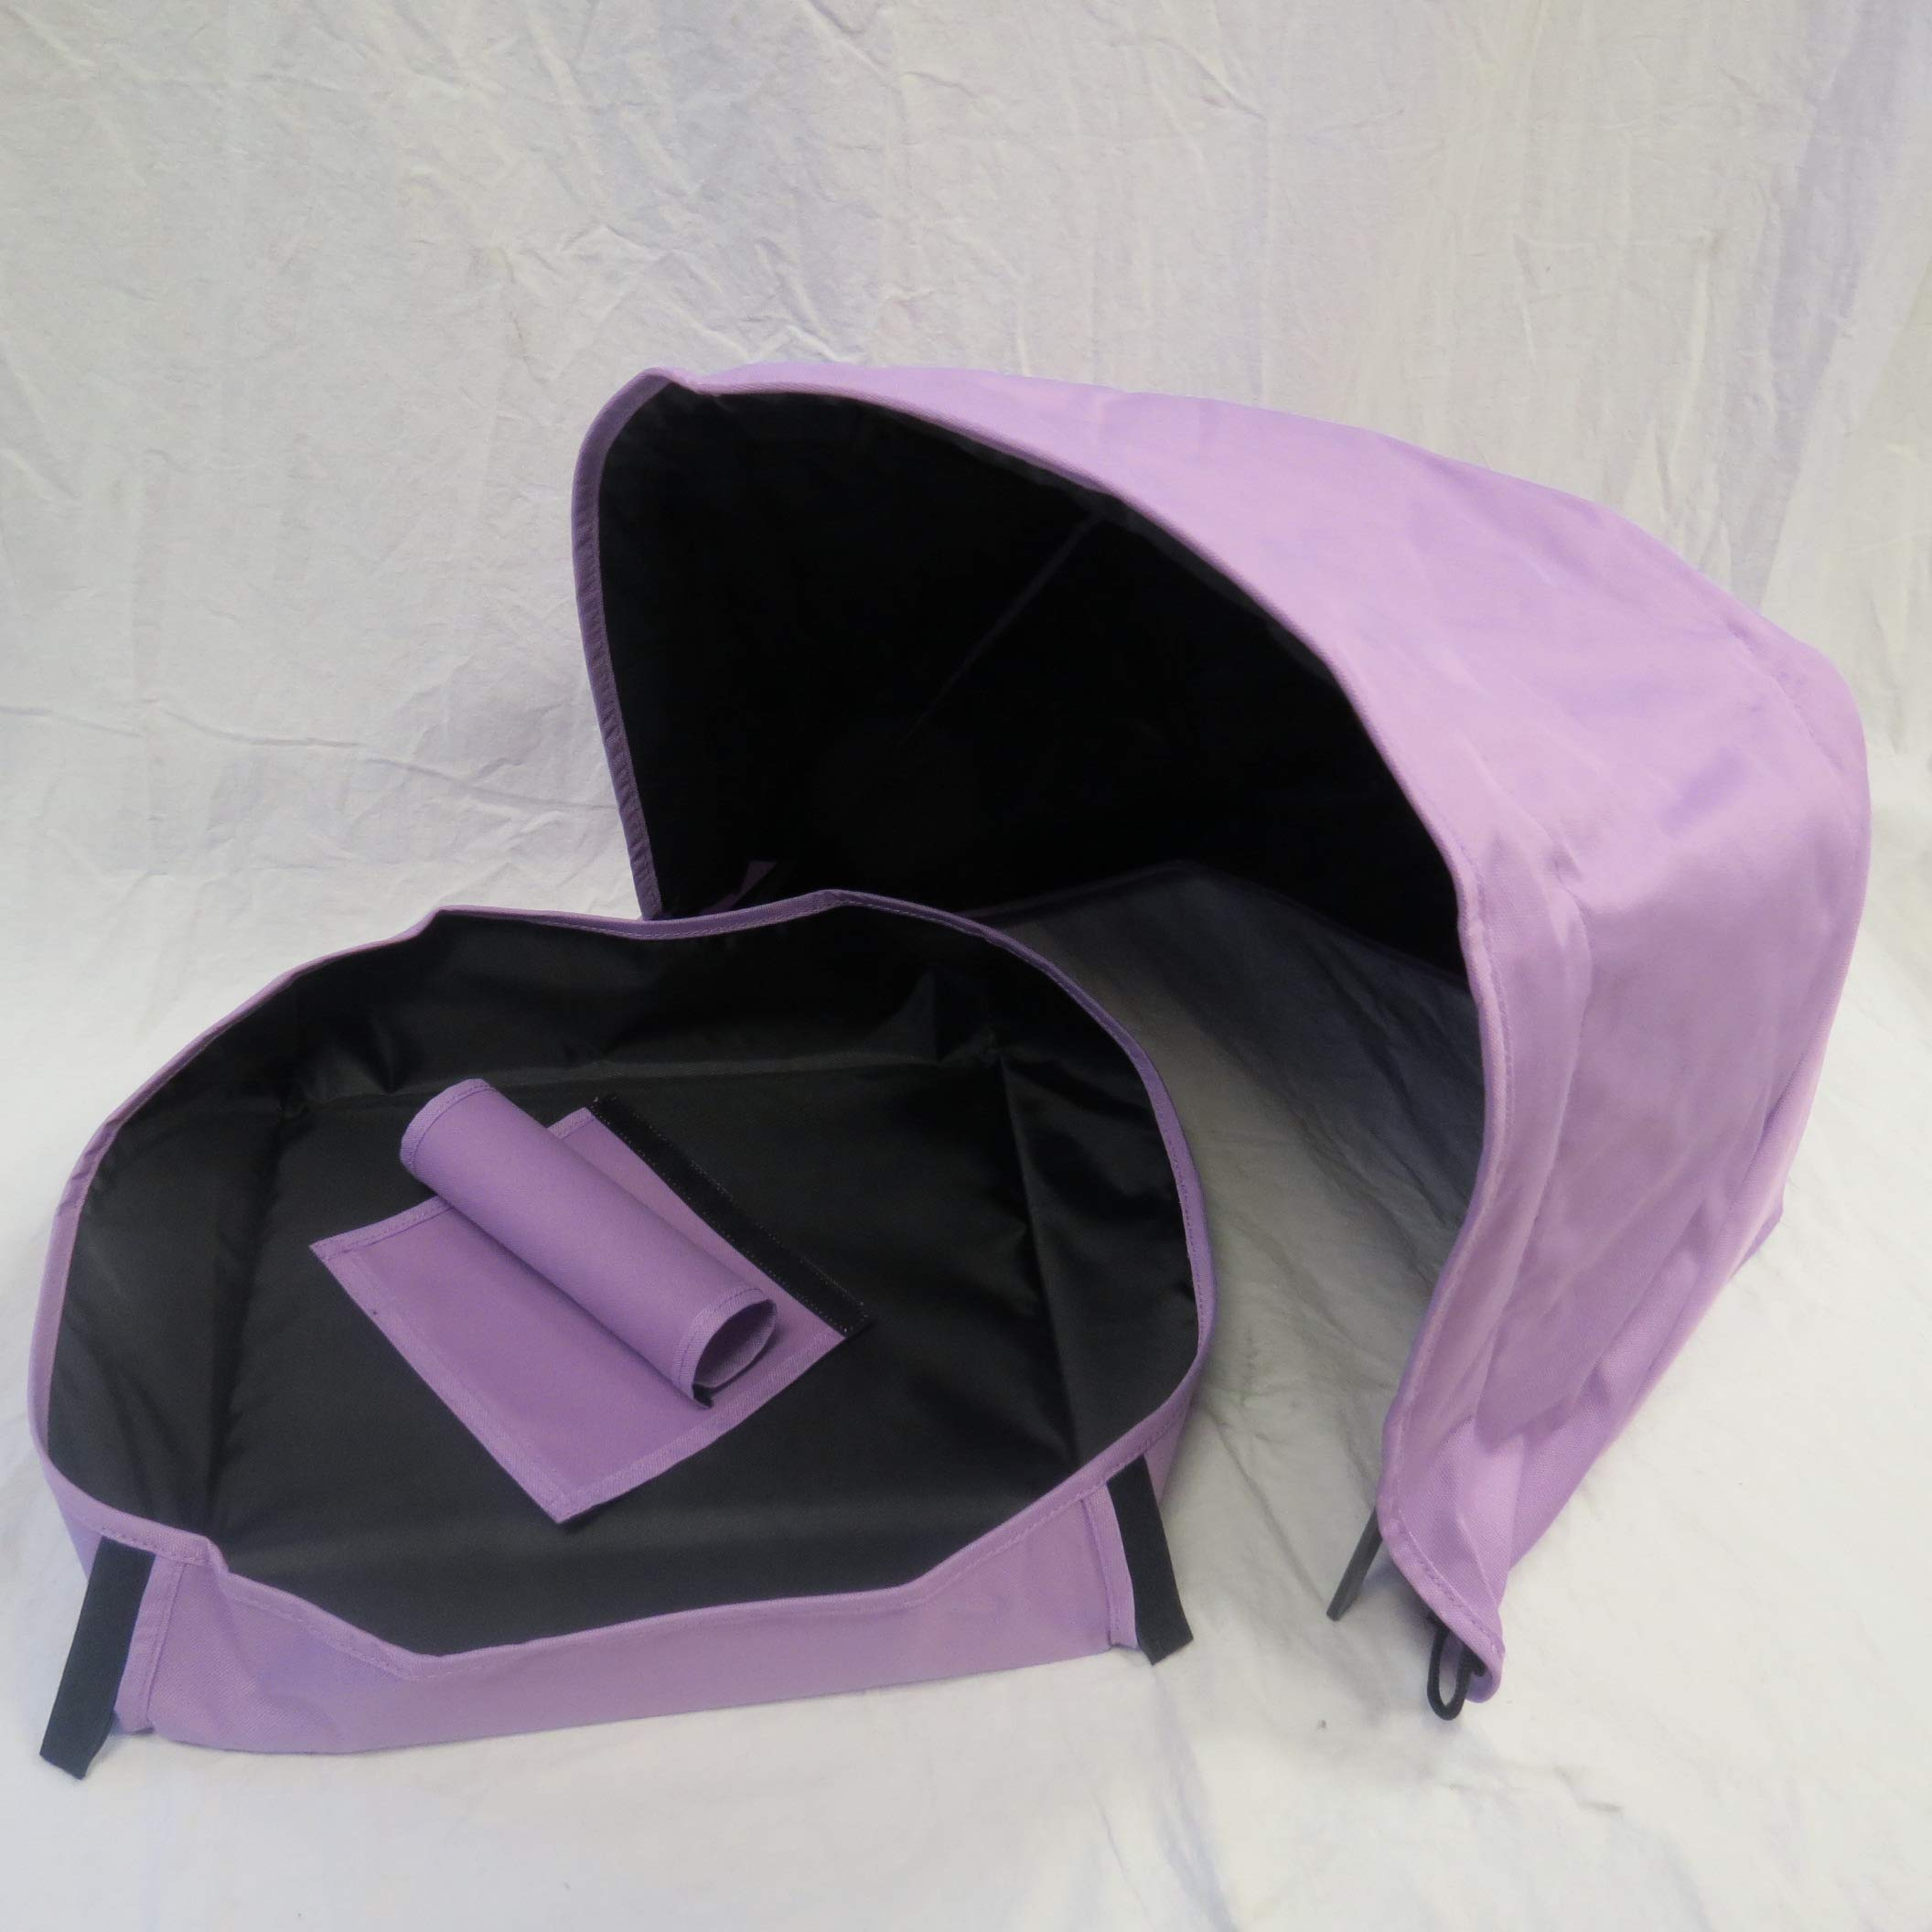 Light Purple Sun Shade Canopy with Wires and Under Seat Storage Basket Plus Free Handle Bar Covers for Bugaboo Cameleon 1, 2, 3, Frog Baby Child Strollers by Ponini (Image #2)